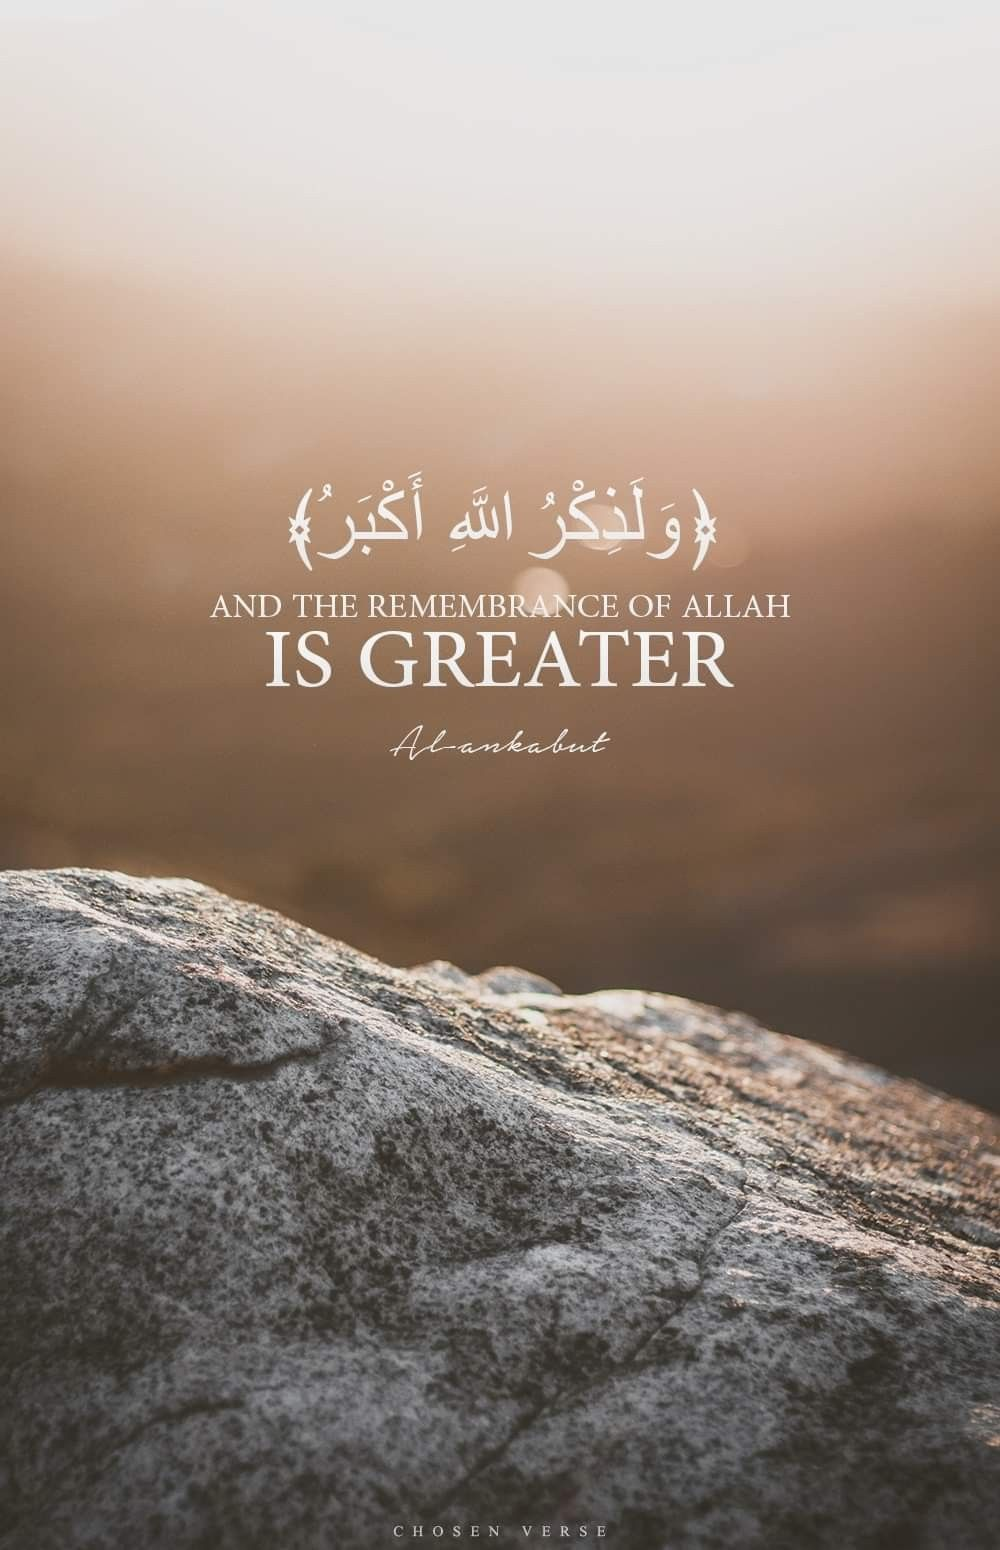 Pin by Amjad Ragab on Islam Quotes  Islamic inspirational quotes